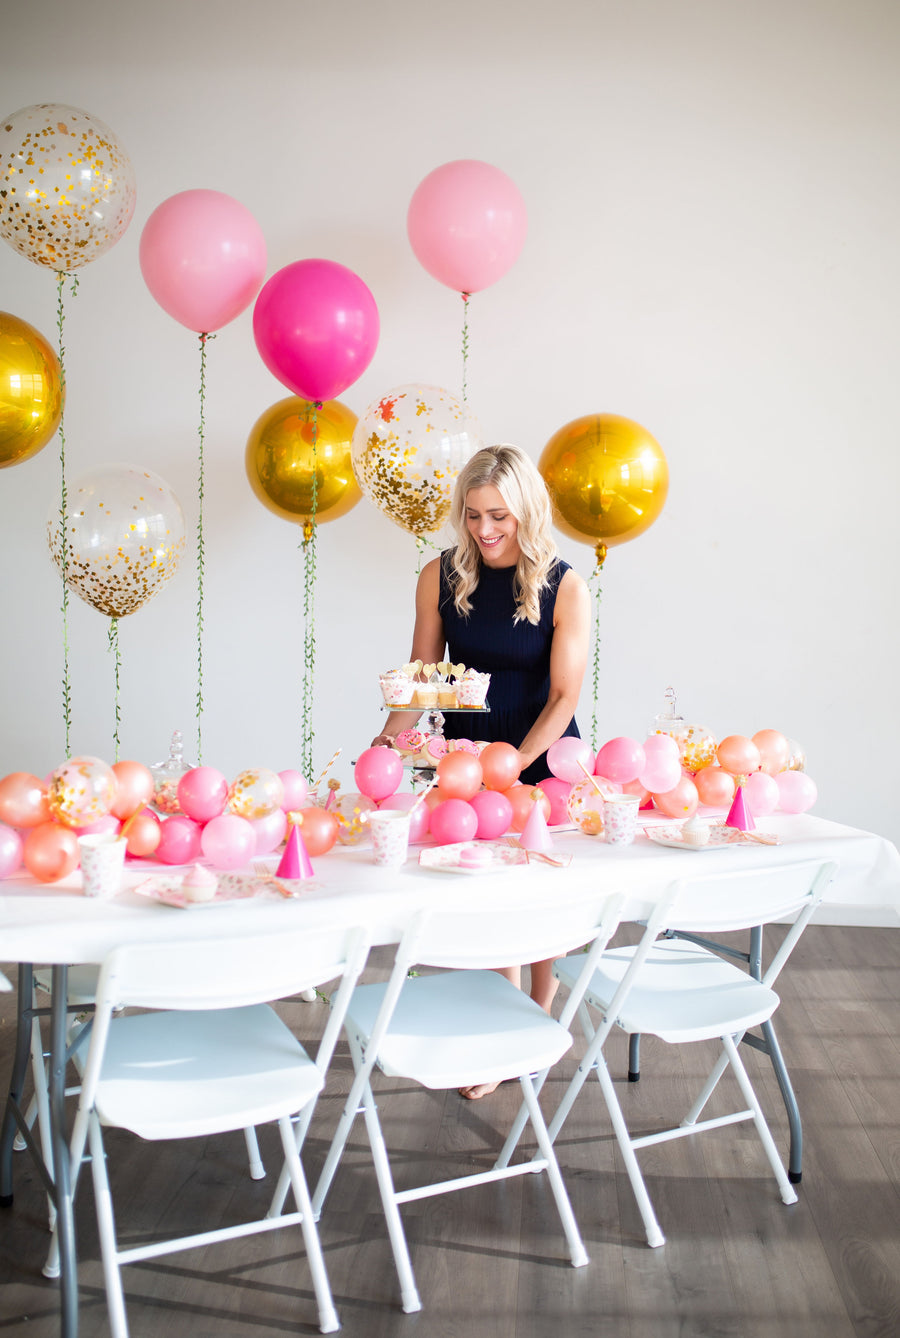 Shop Is Open Shipping Orders Plus Shop Now Pay Later With Sezzle At Checkout Twigs And Twirls Logo 2 Shop By Product Balloons Latex Balloons Balloons Bouquets Confetti Balloons Foil Balloons Foil Letters Foil Numbers Shapes Giant Balloons Giant